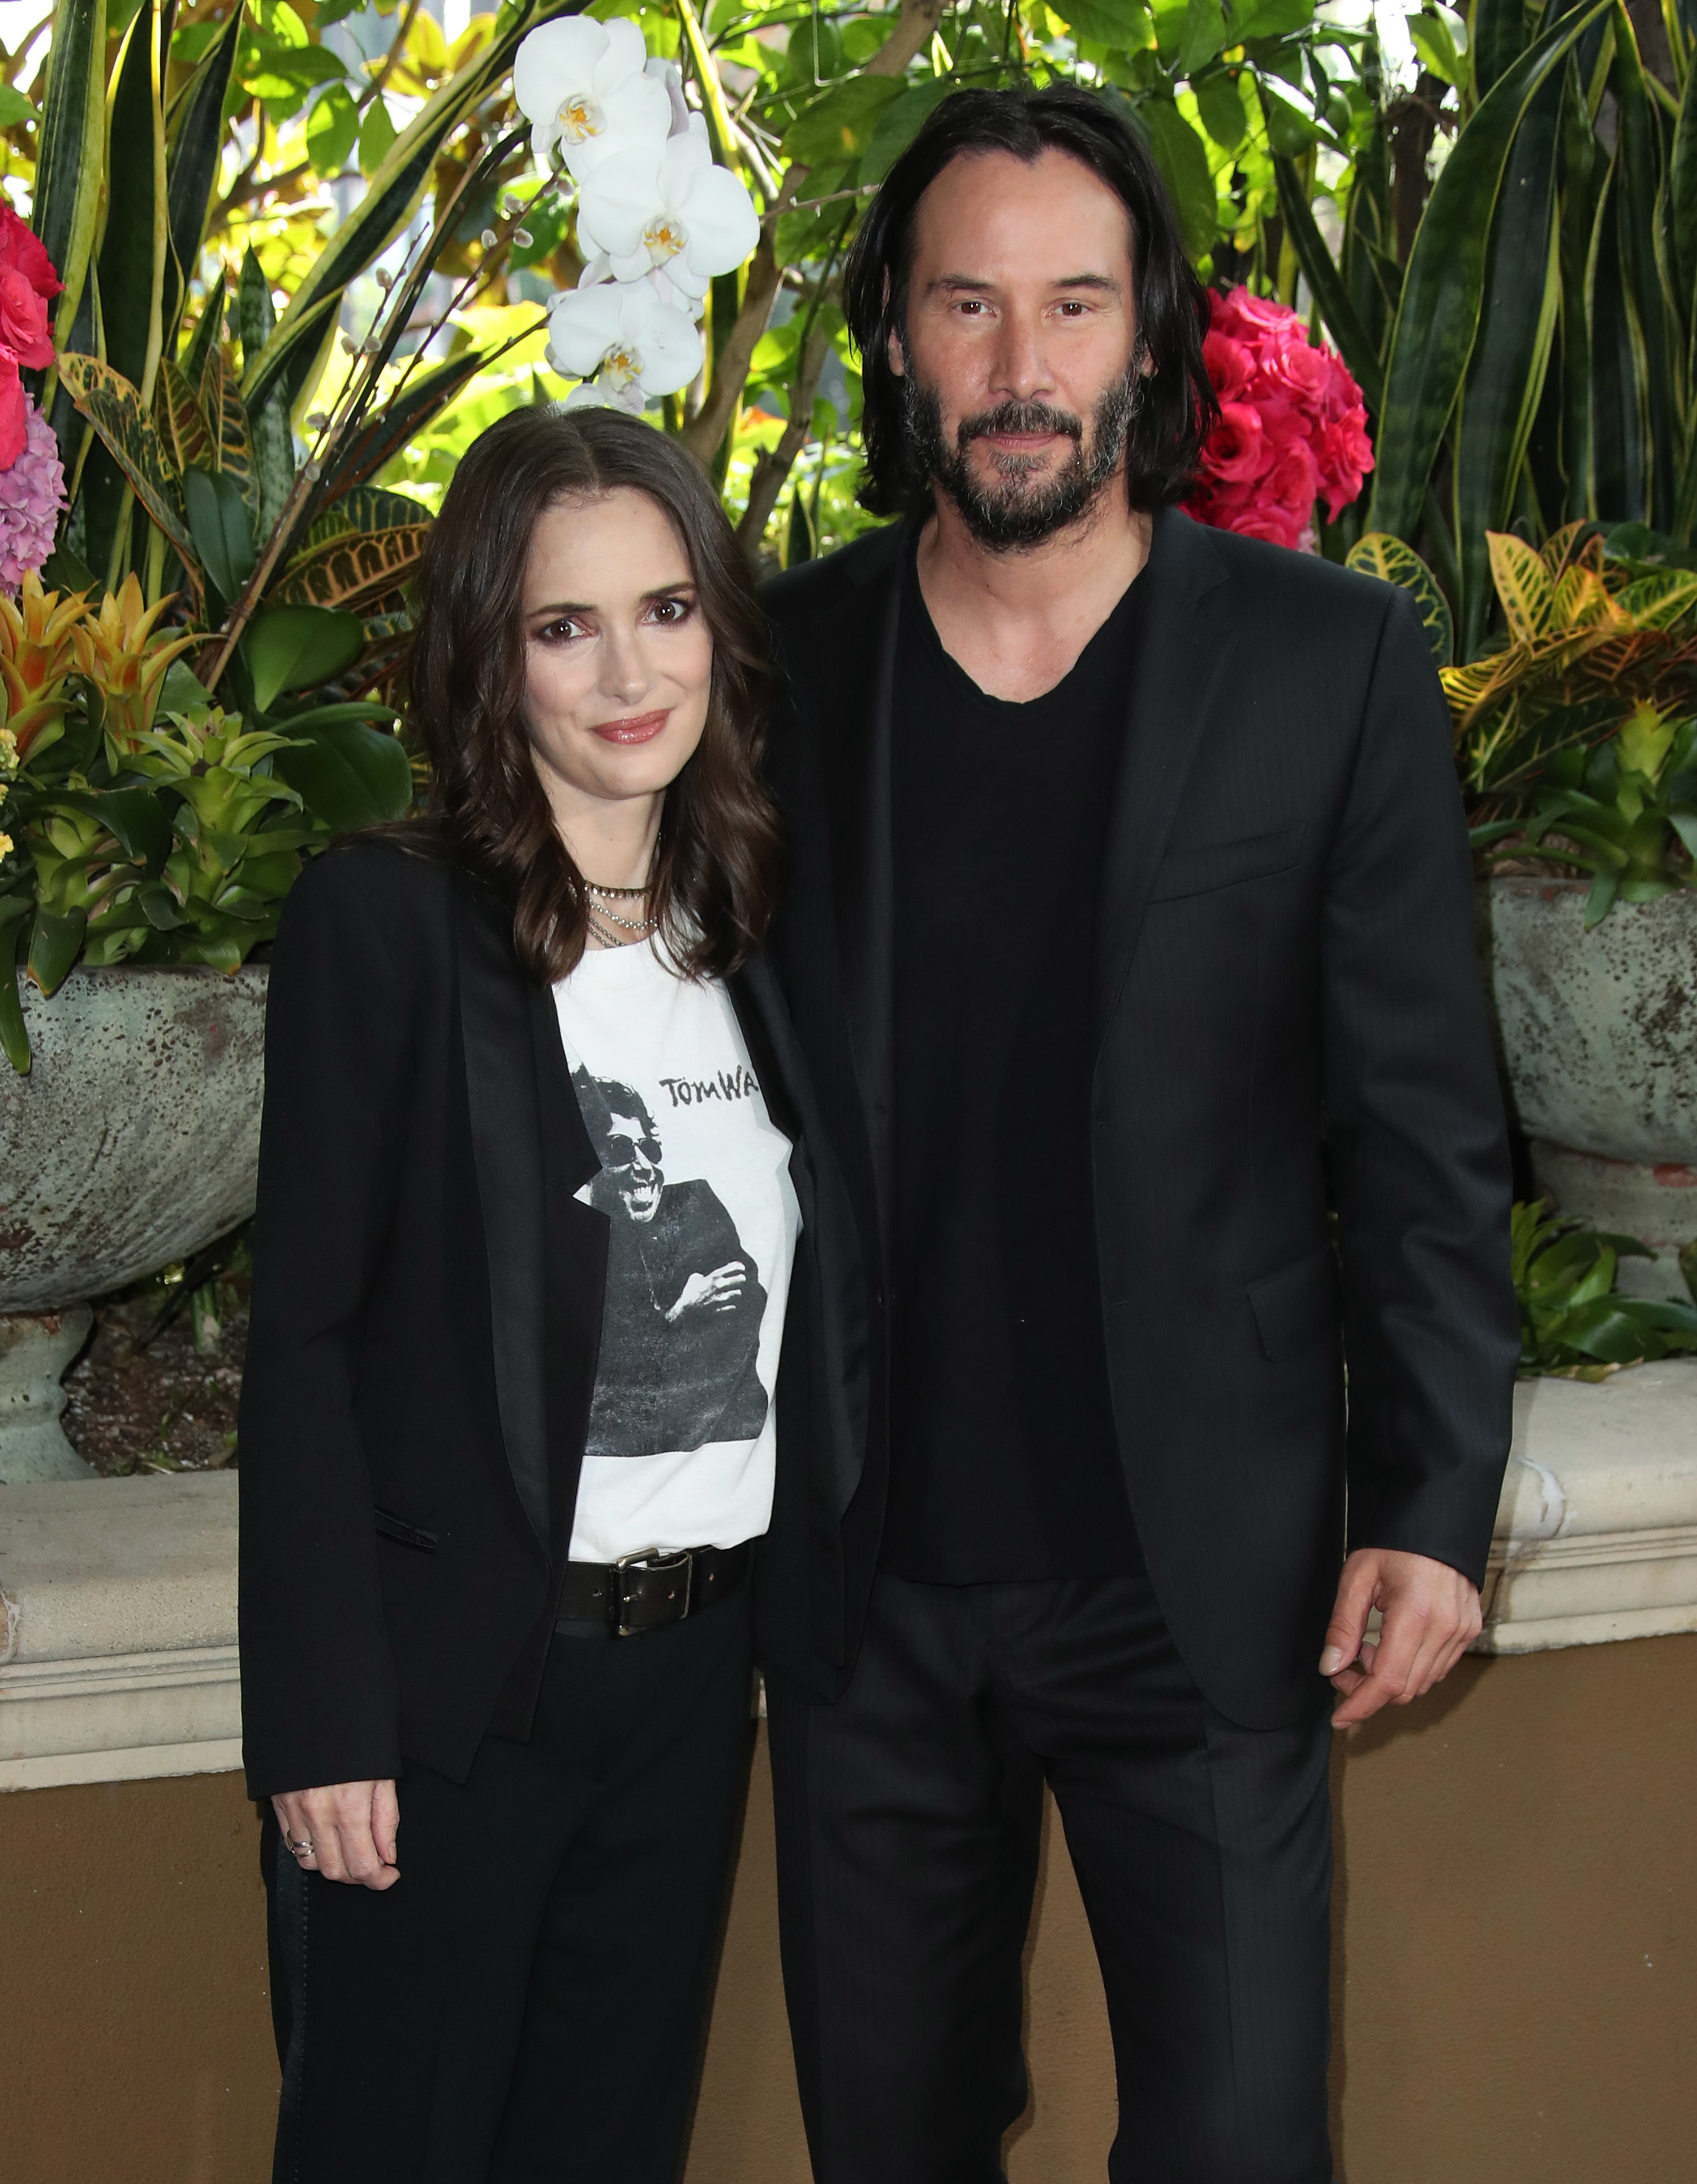 """Winona Ryder and Keanu Reeves attend the """"Destination Wedding"""" film photo call in Los Angeles on Aug. 18, 2018."""